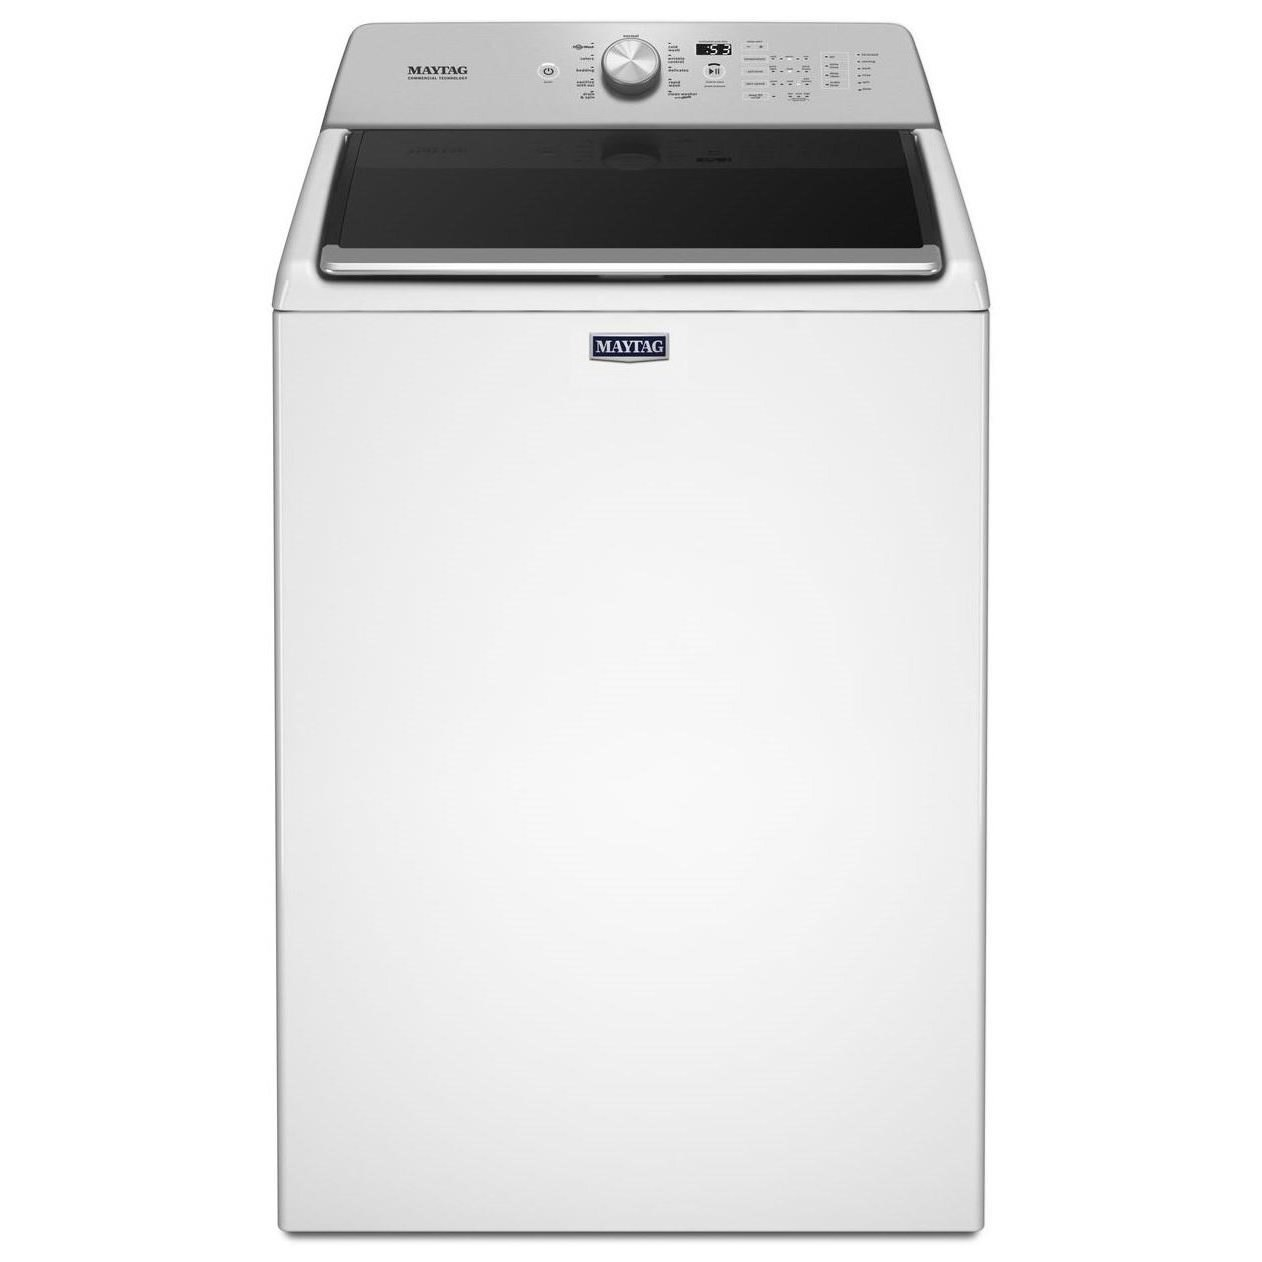 4.7 Cu. Ft. Top Load Washer